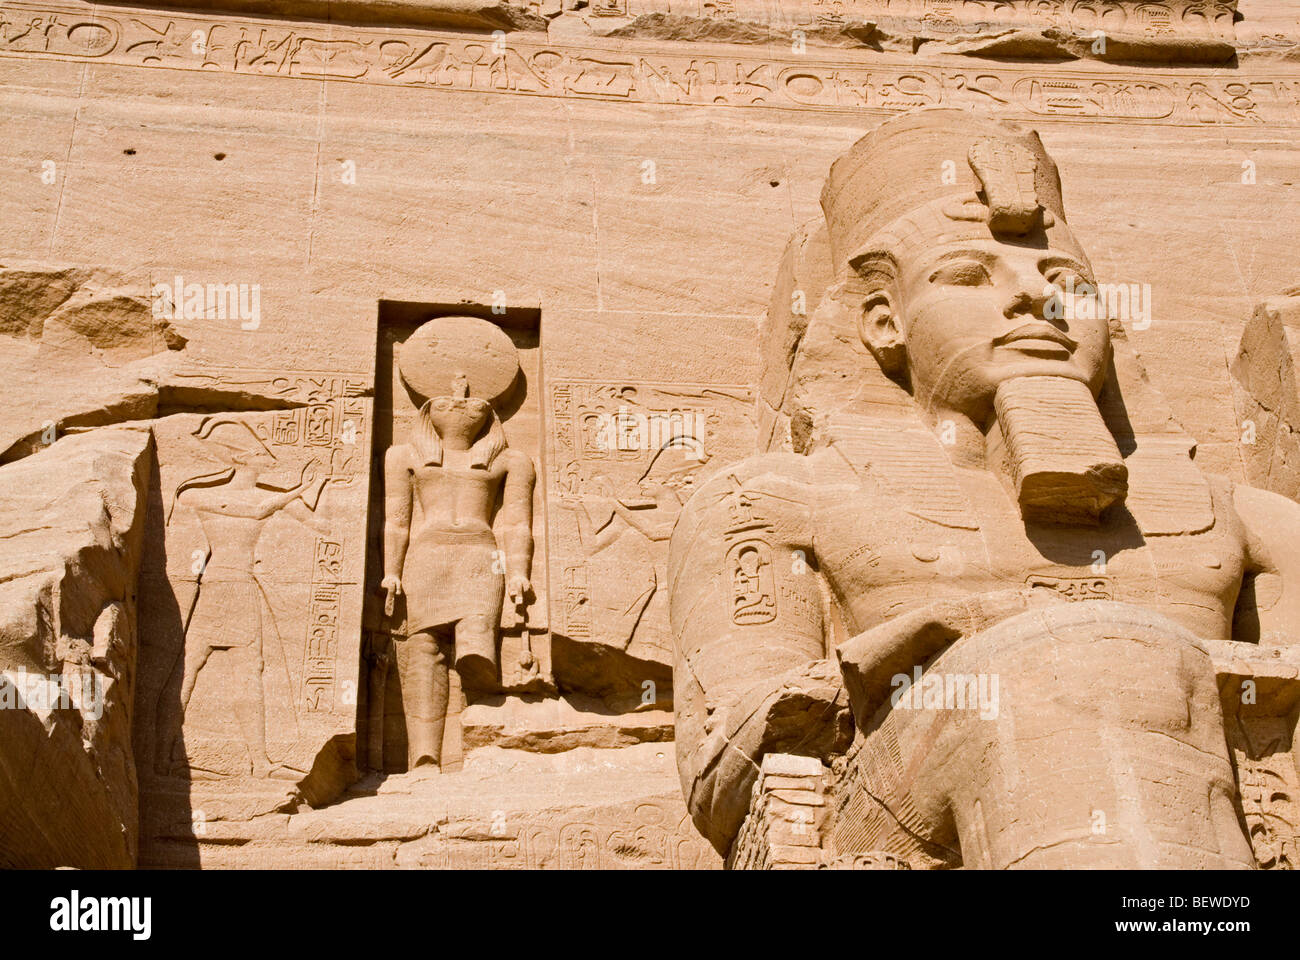 Colossal statue at the Temple of Ramesses II in Abu Simbel Egypt low angle view close-up Stock Photo